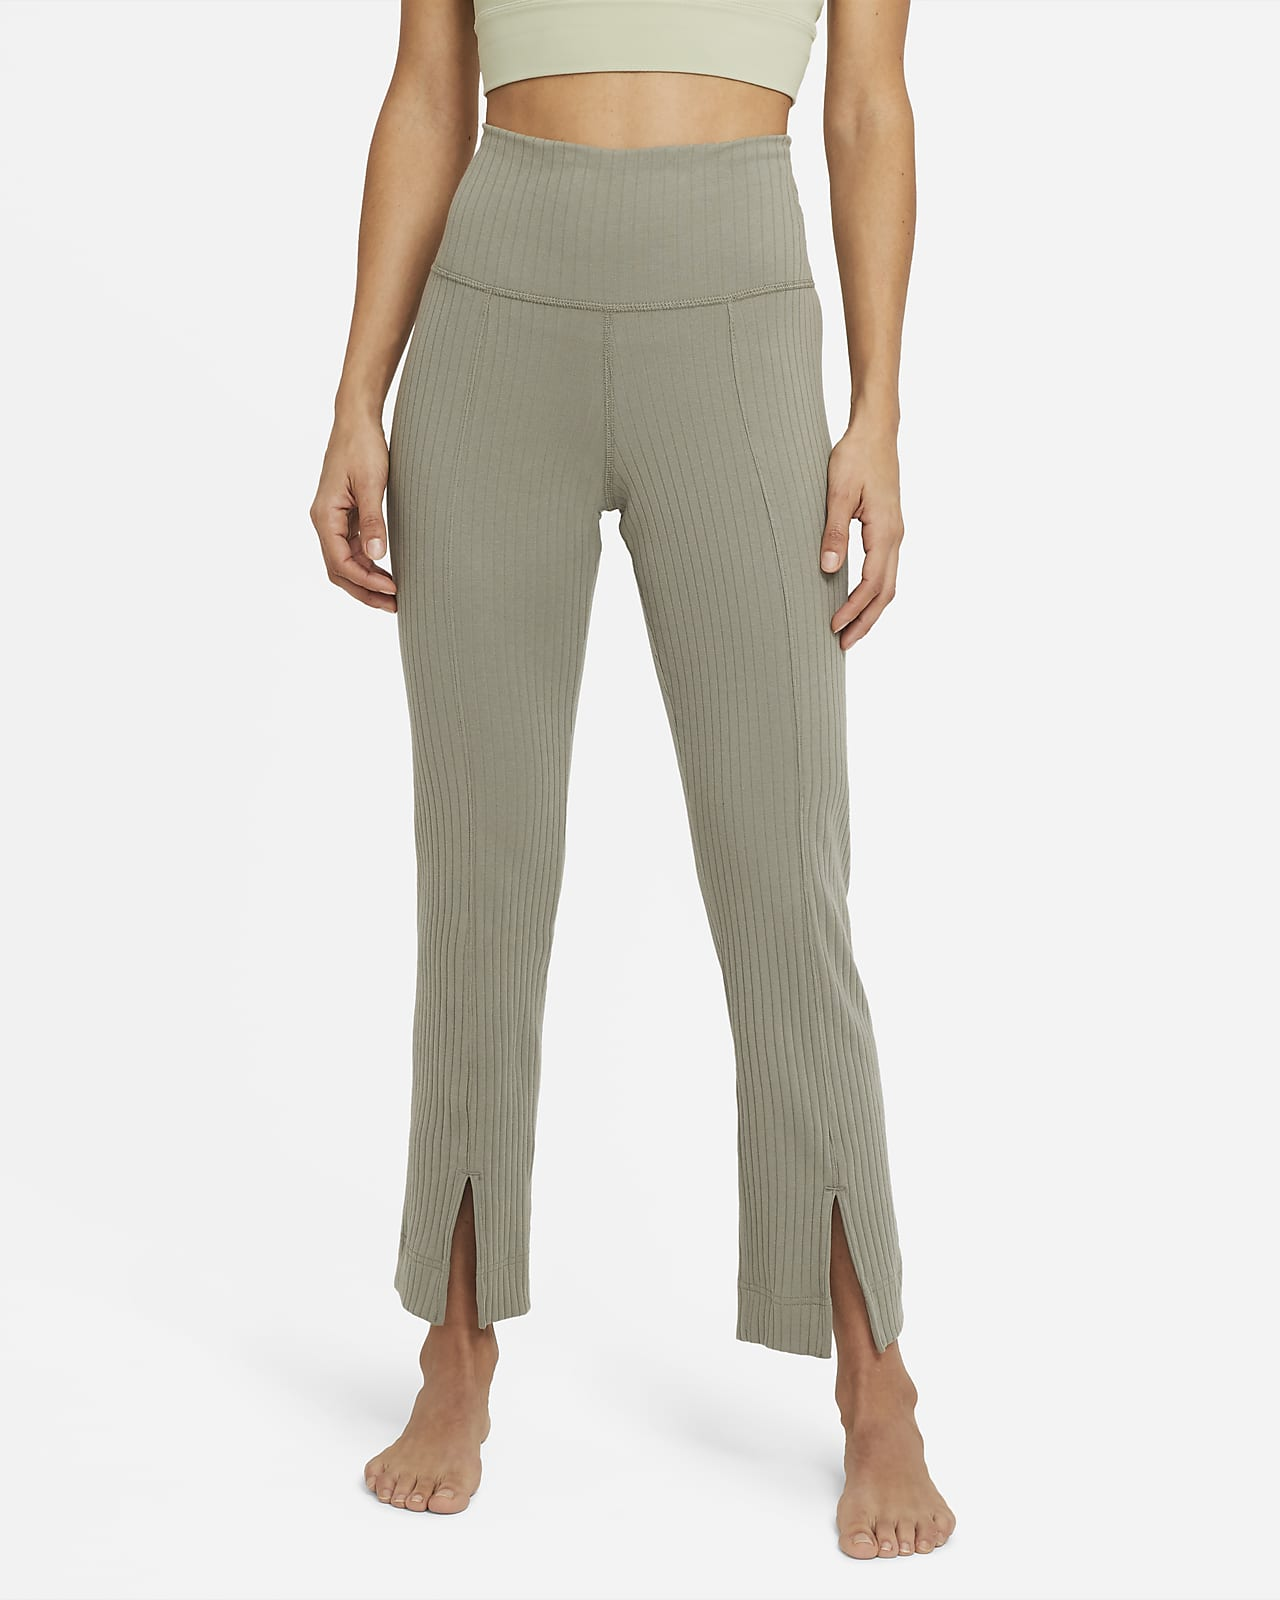 Nike Yoga Women's Ribbed 7/8 Pants